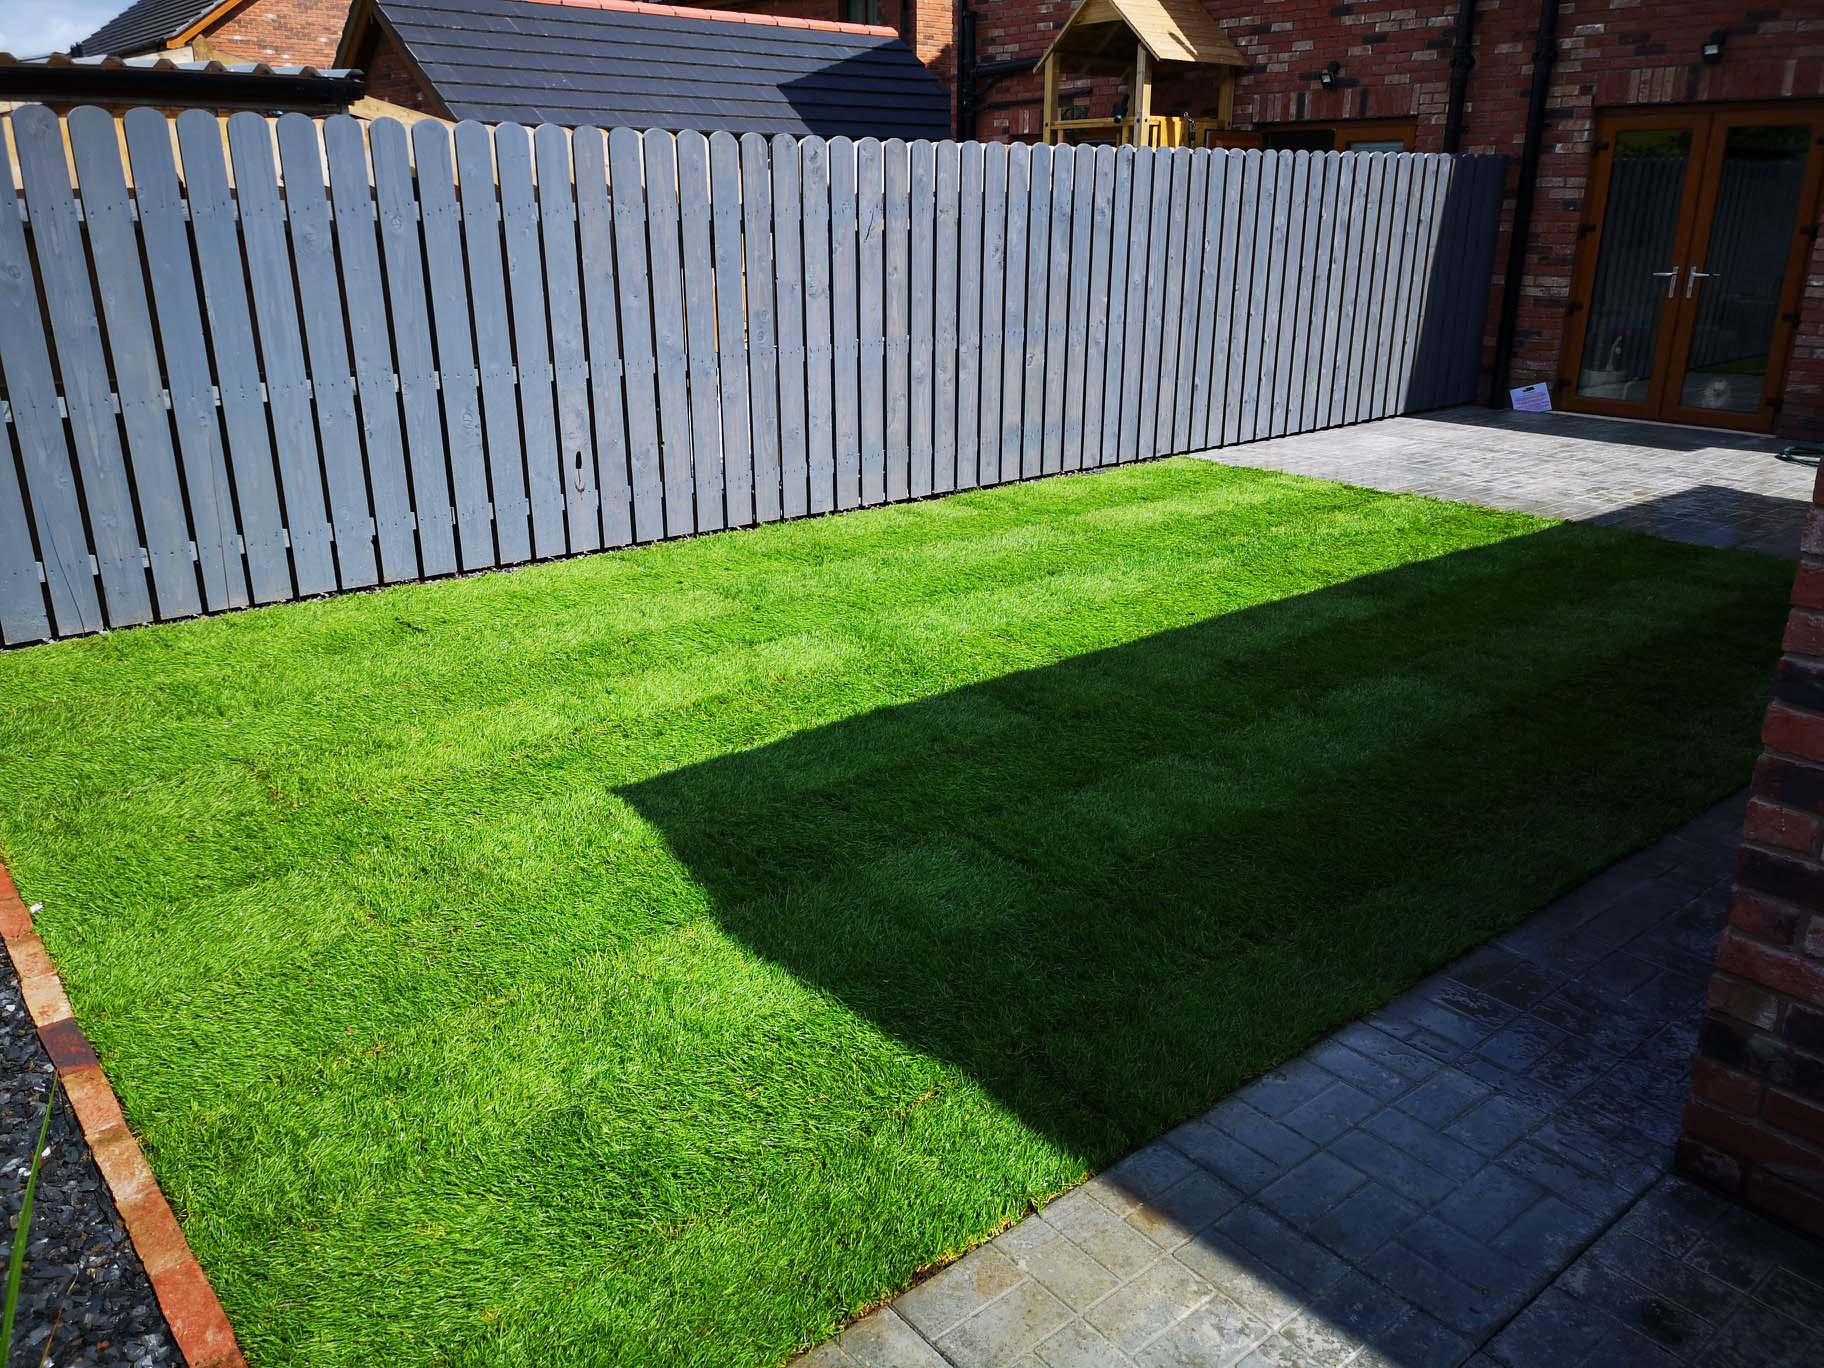 Job finished on the garden grass